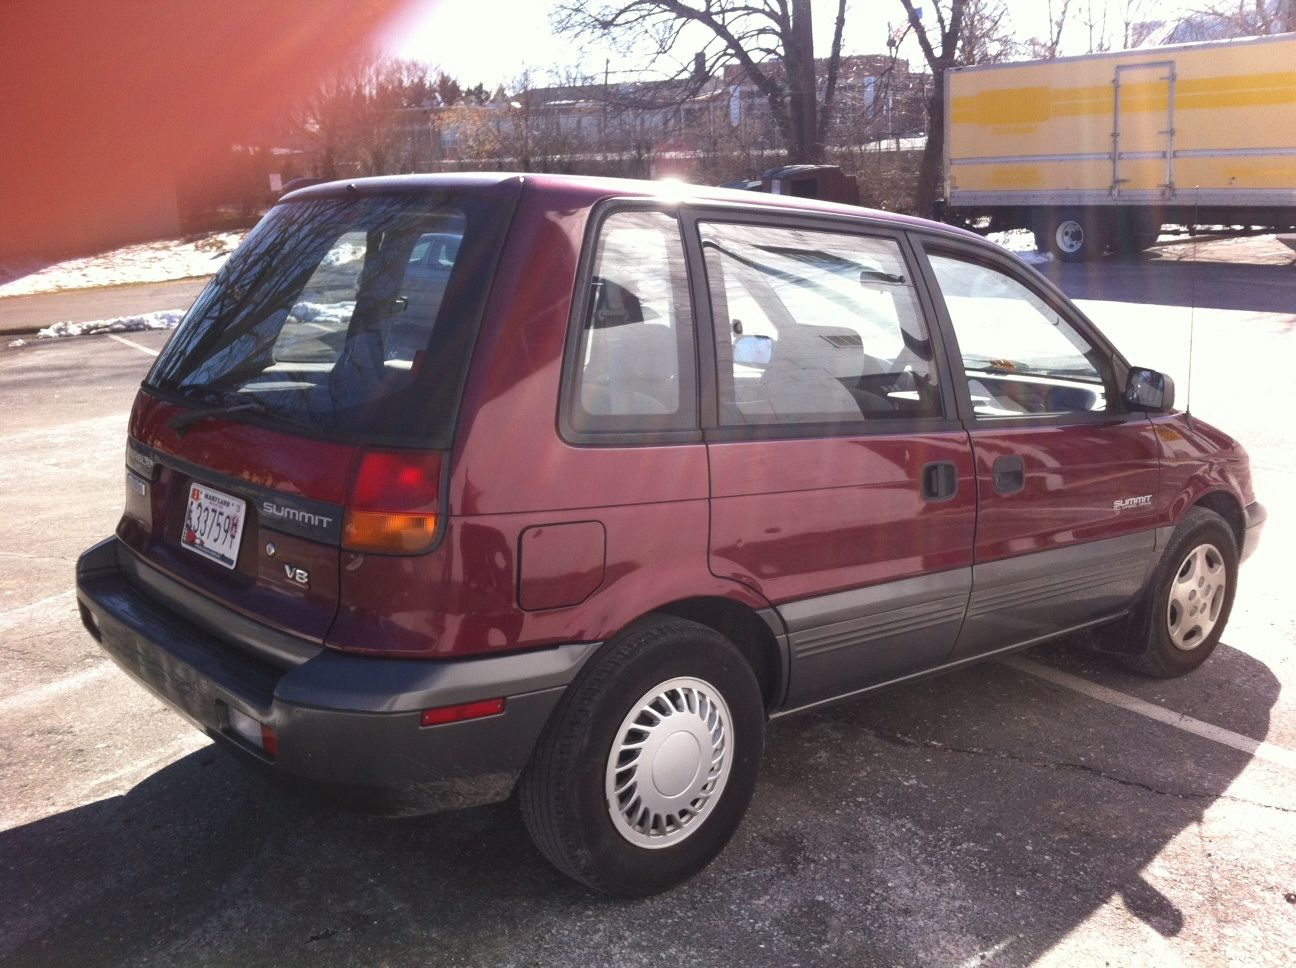 1994 Eagle Summit 4wd 3 Door Wagon For Sale In Rockville  Maryland  United States For Sale